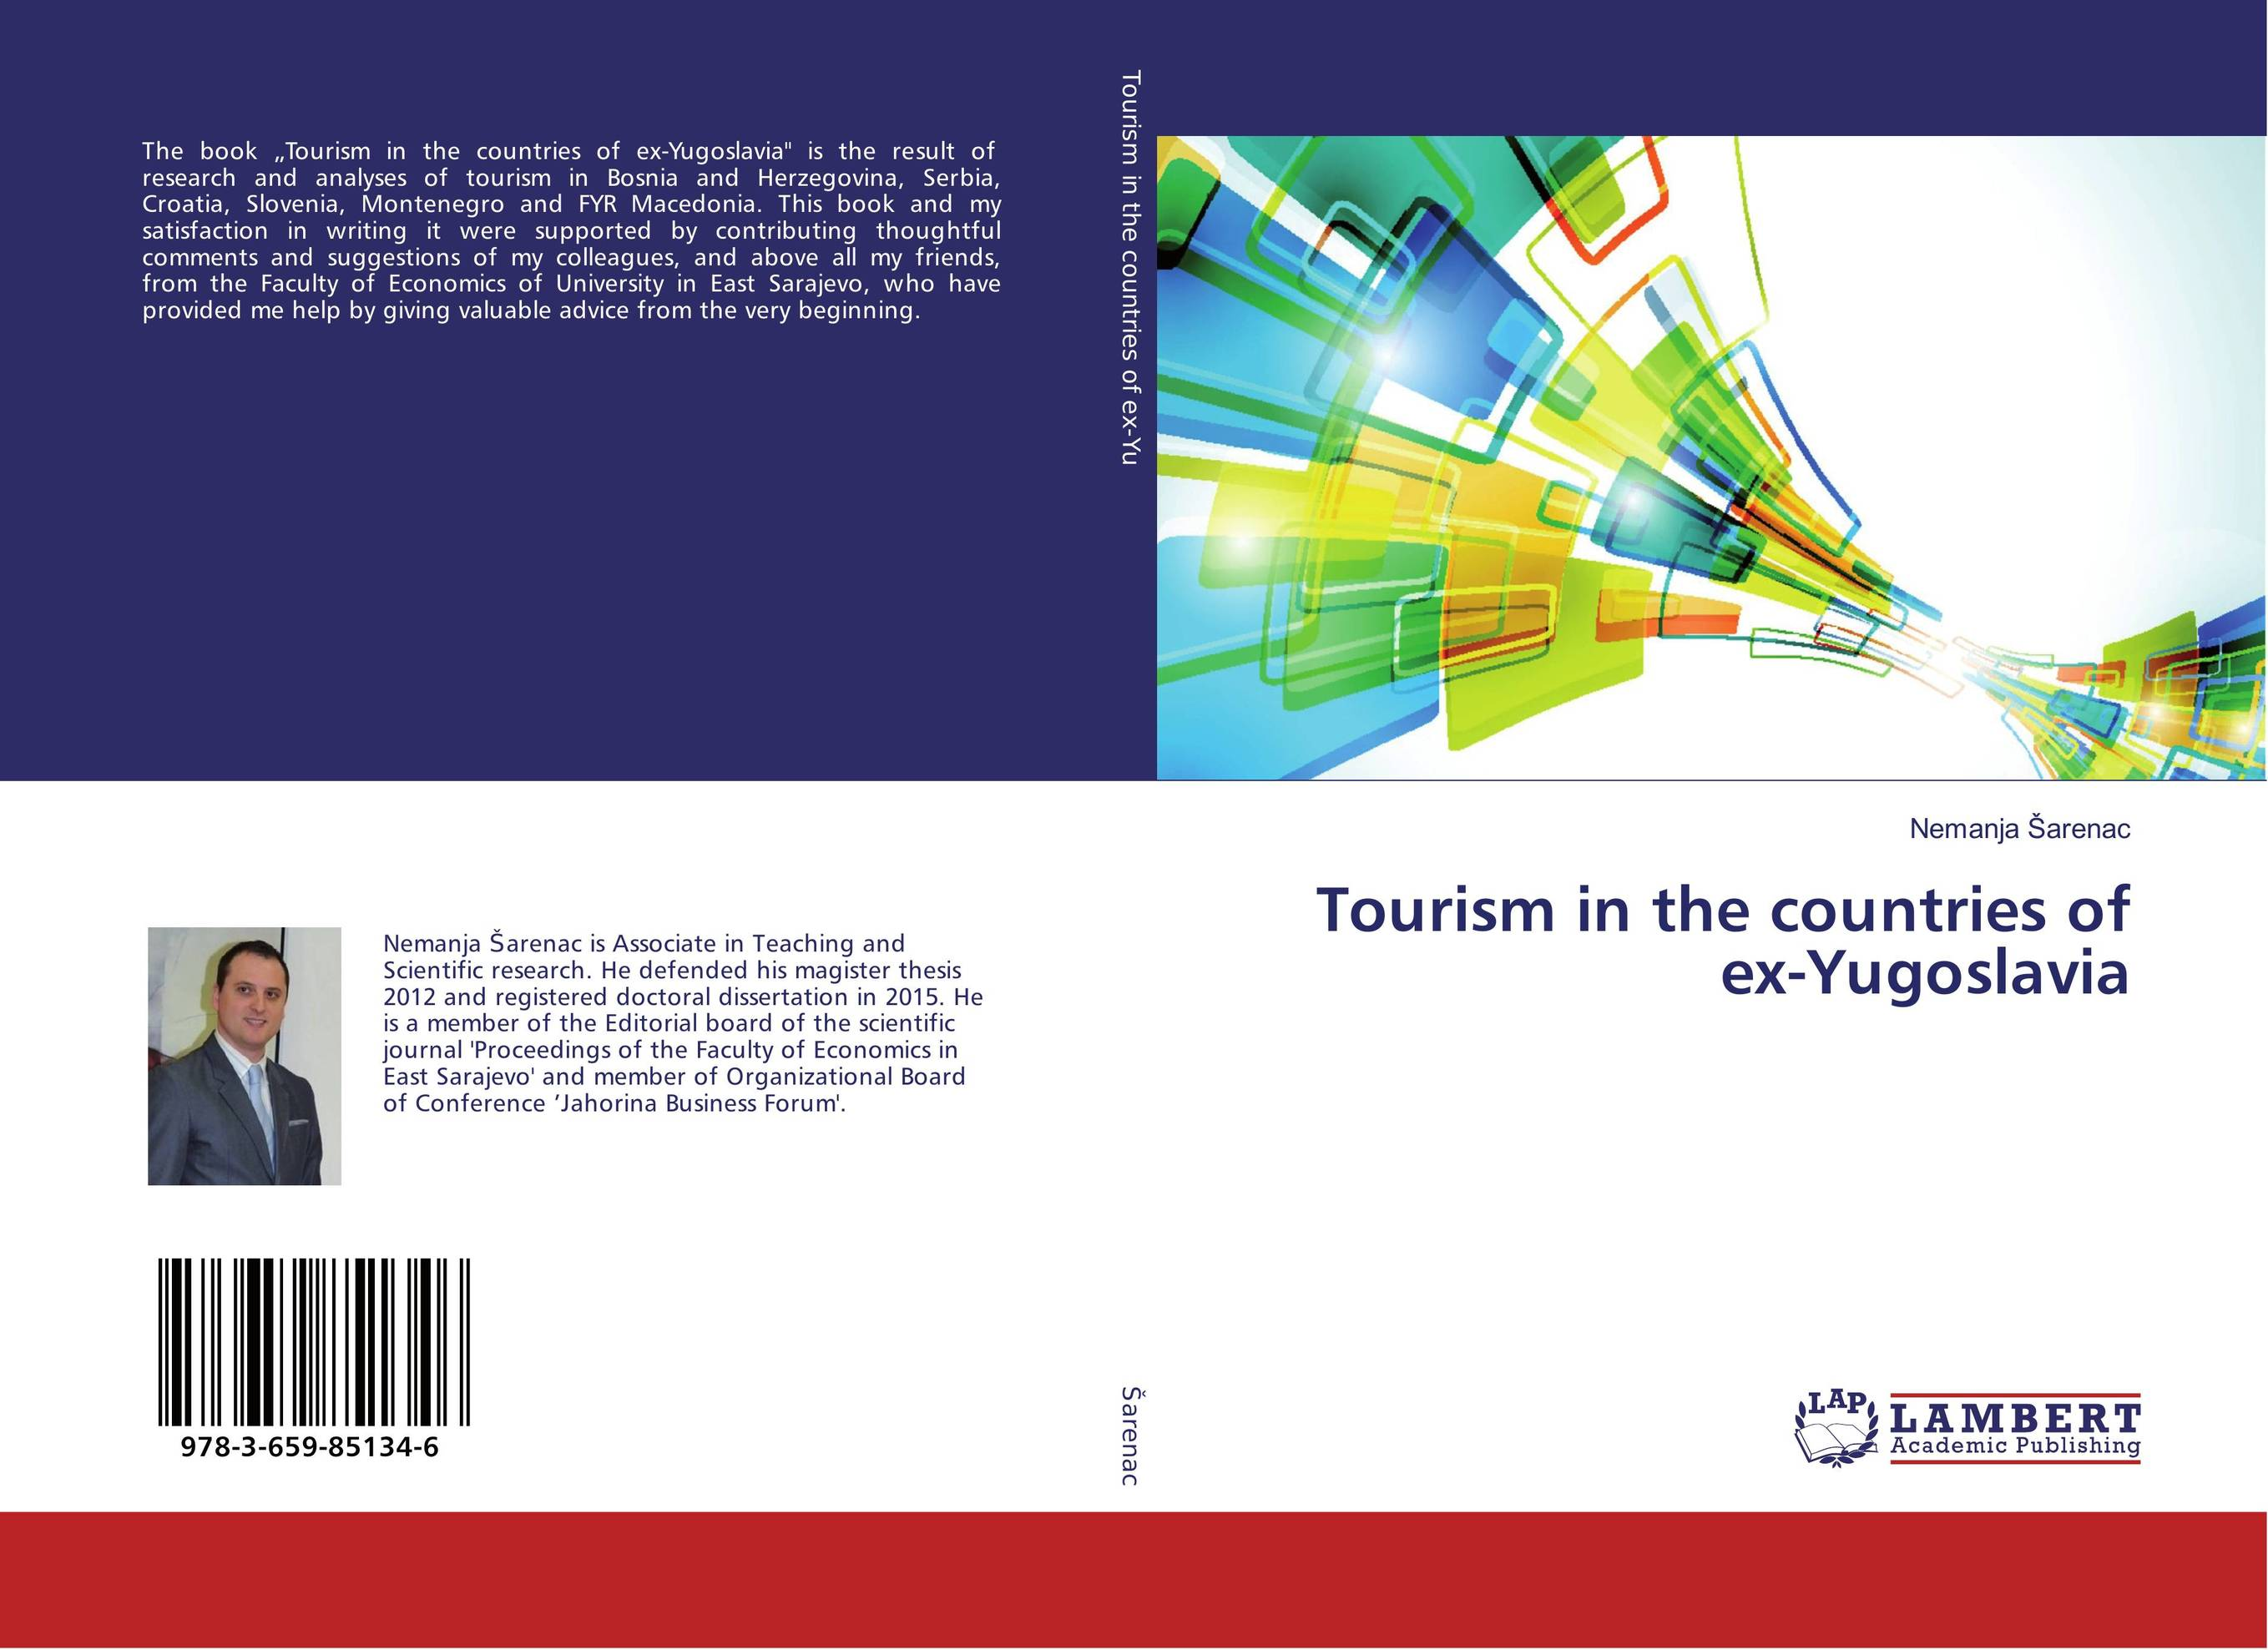 Tourism in the countries of ex-Yugoslavia